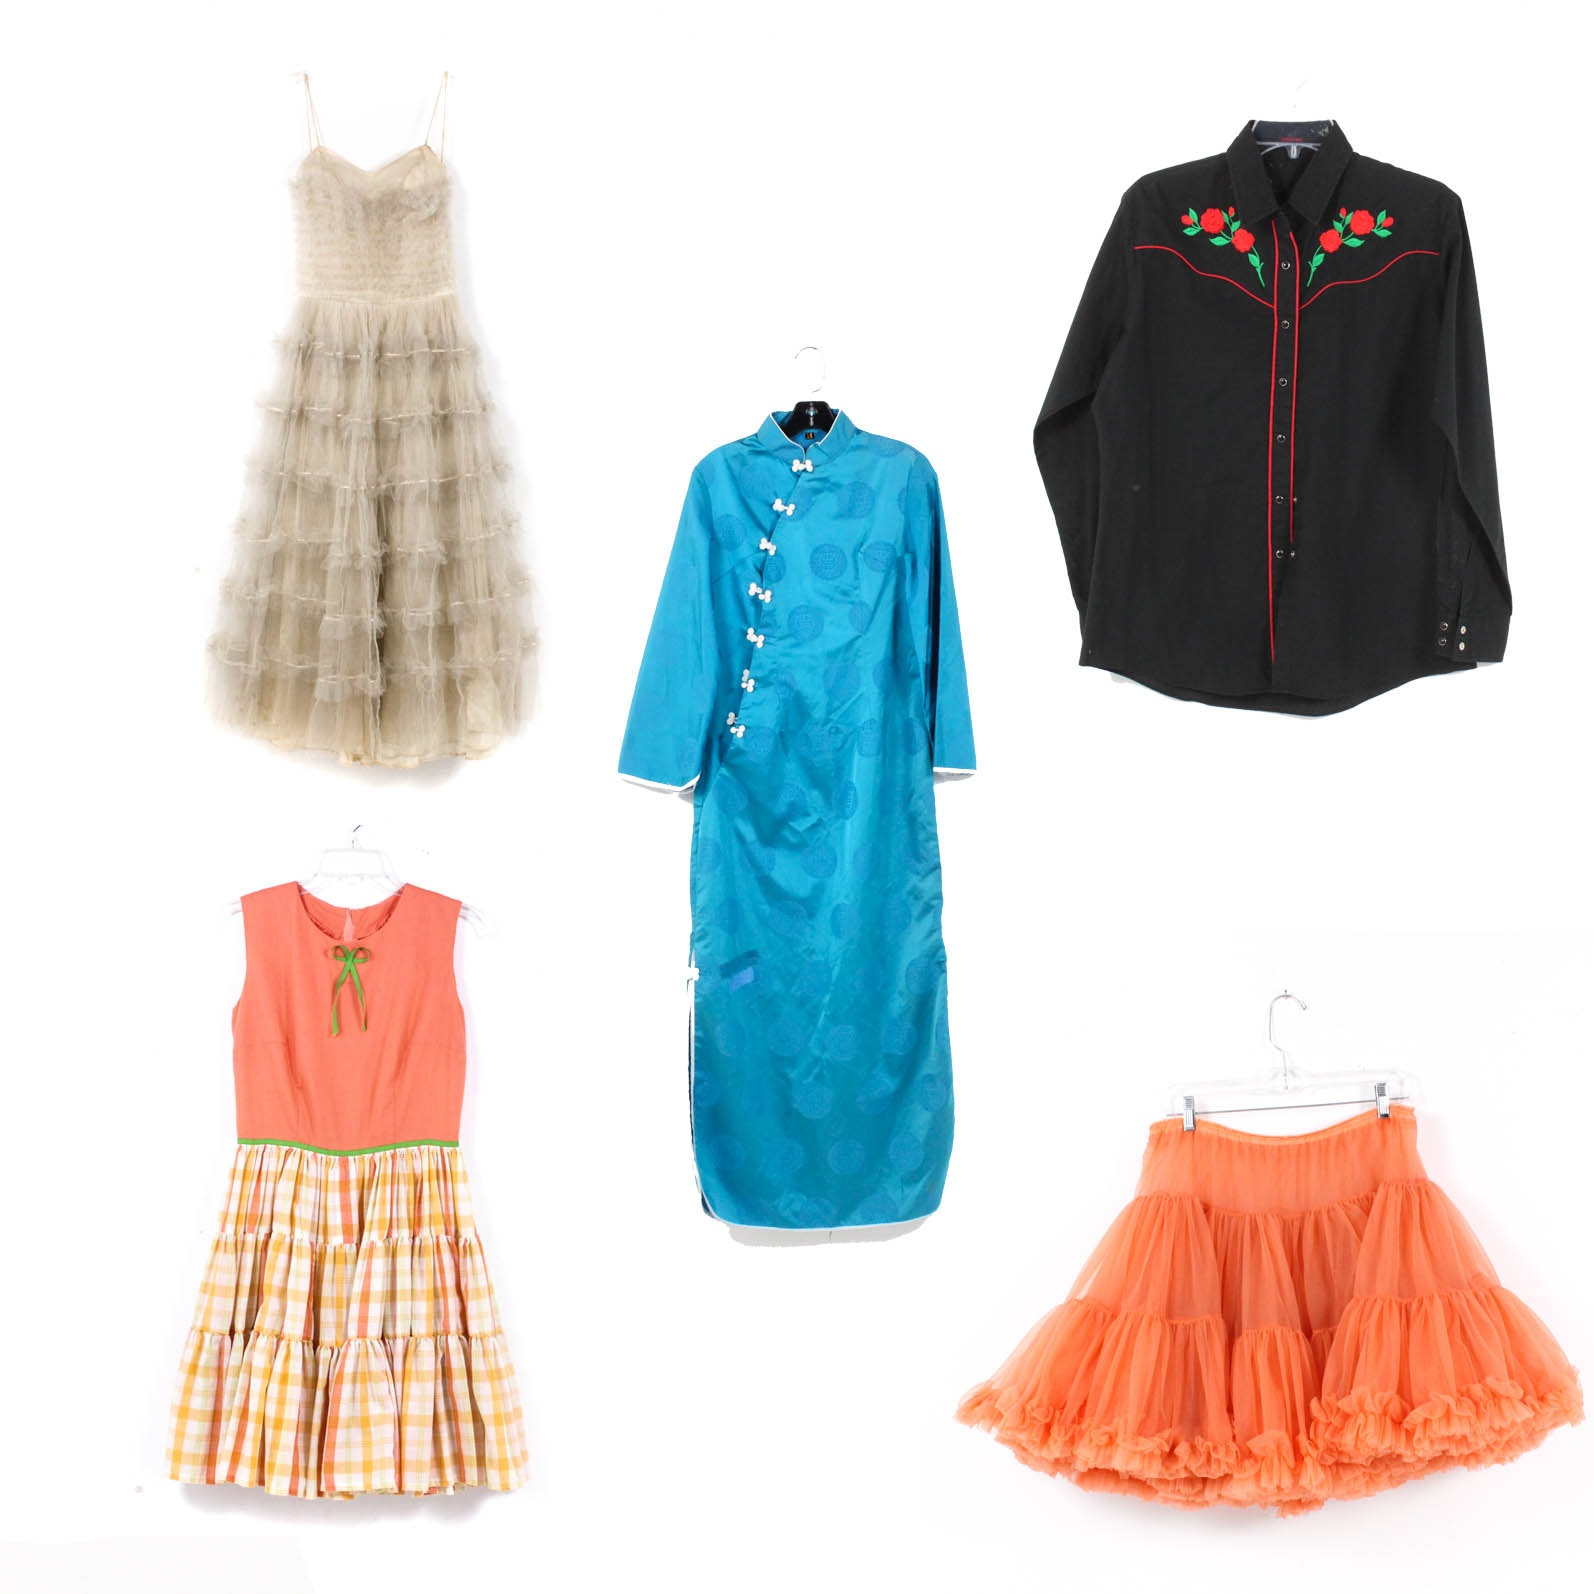 Vintage Clothing Assortment